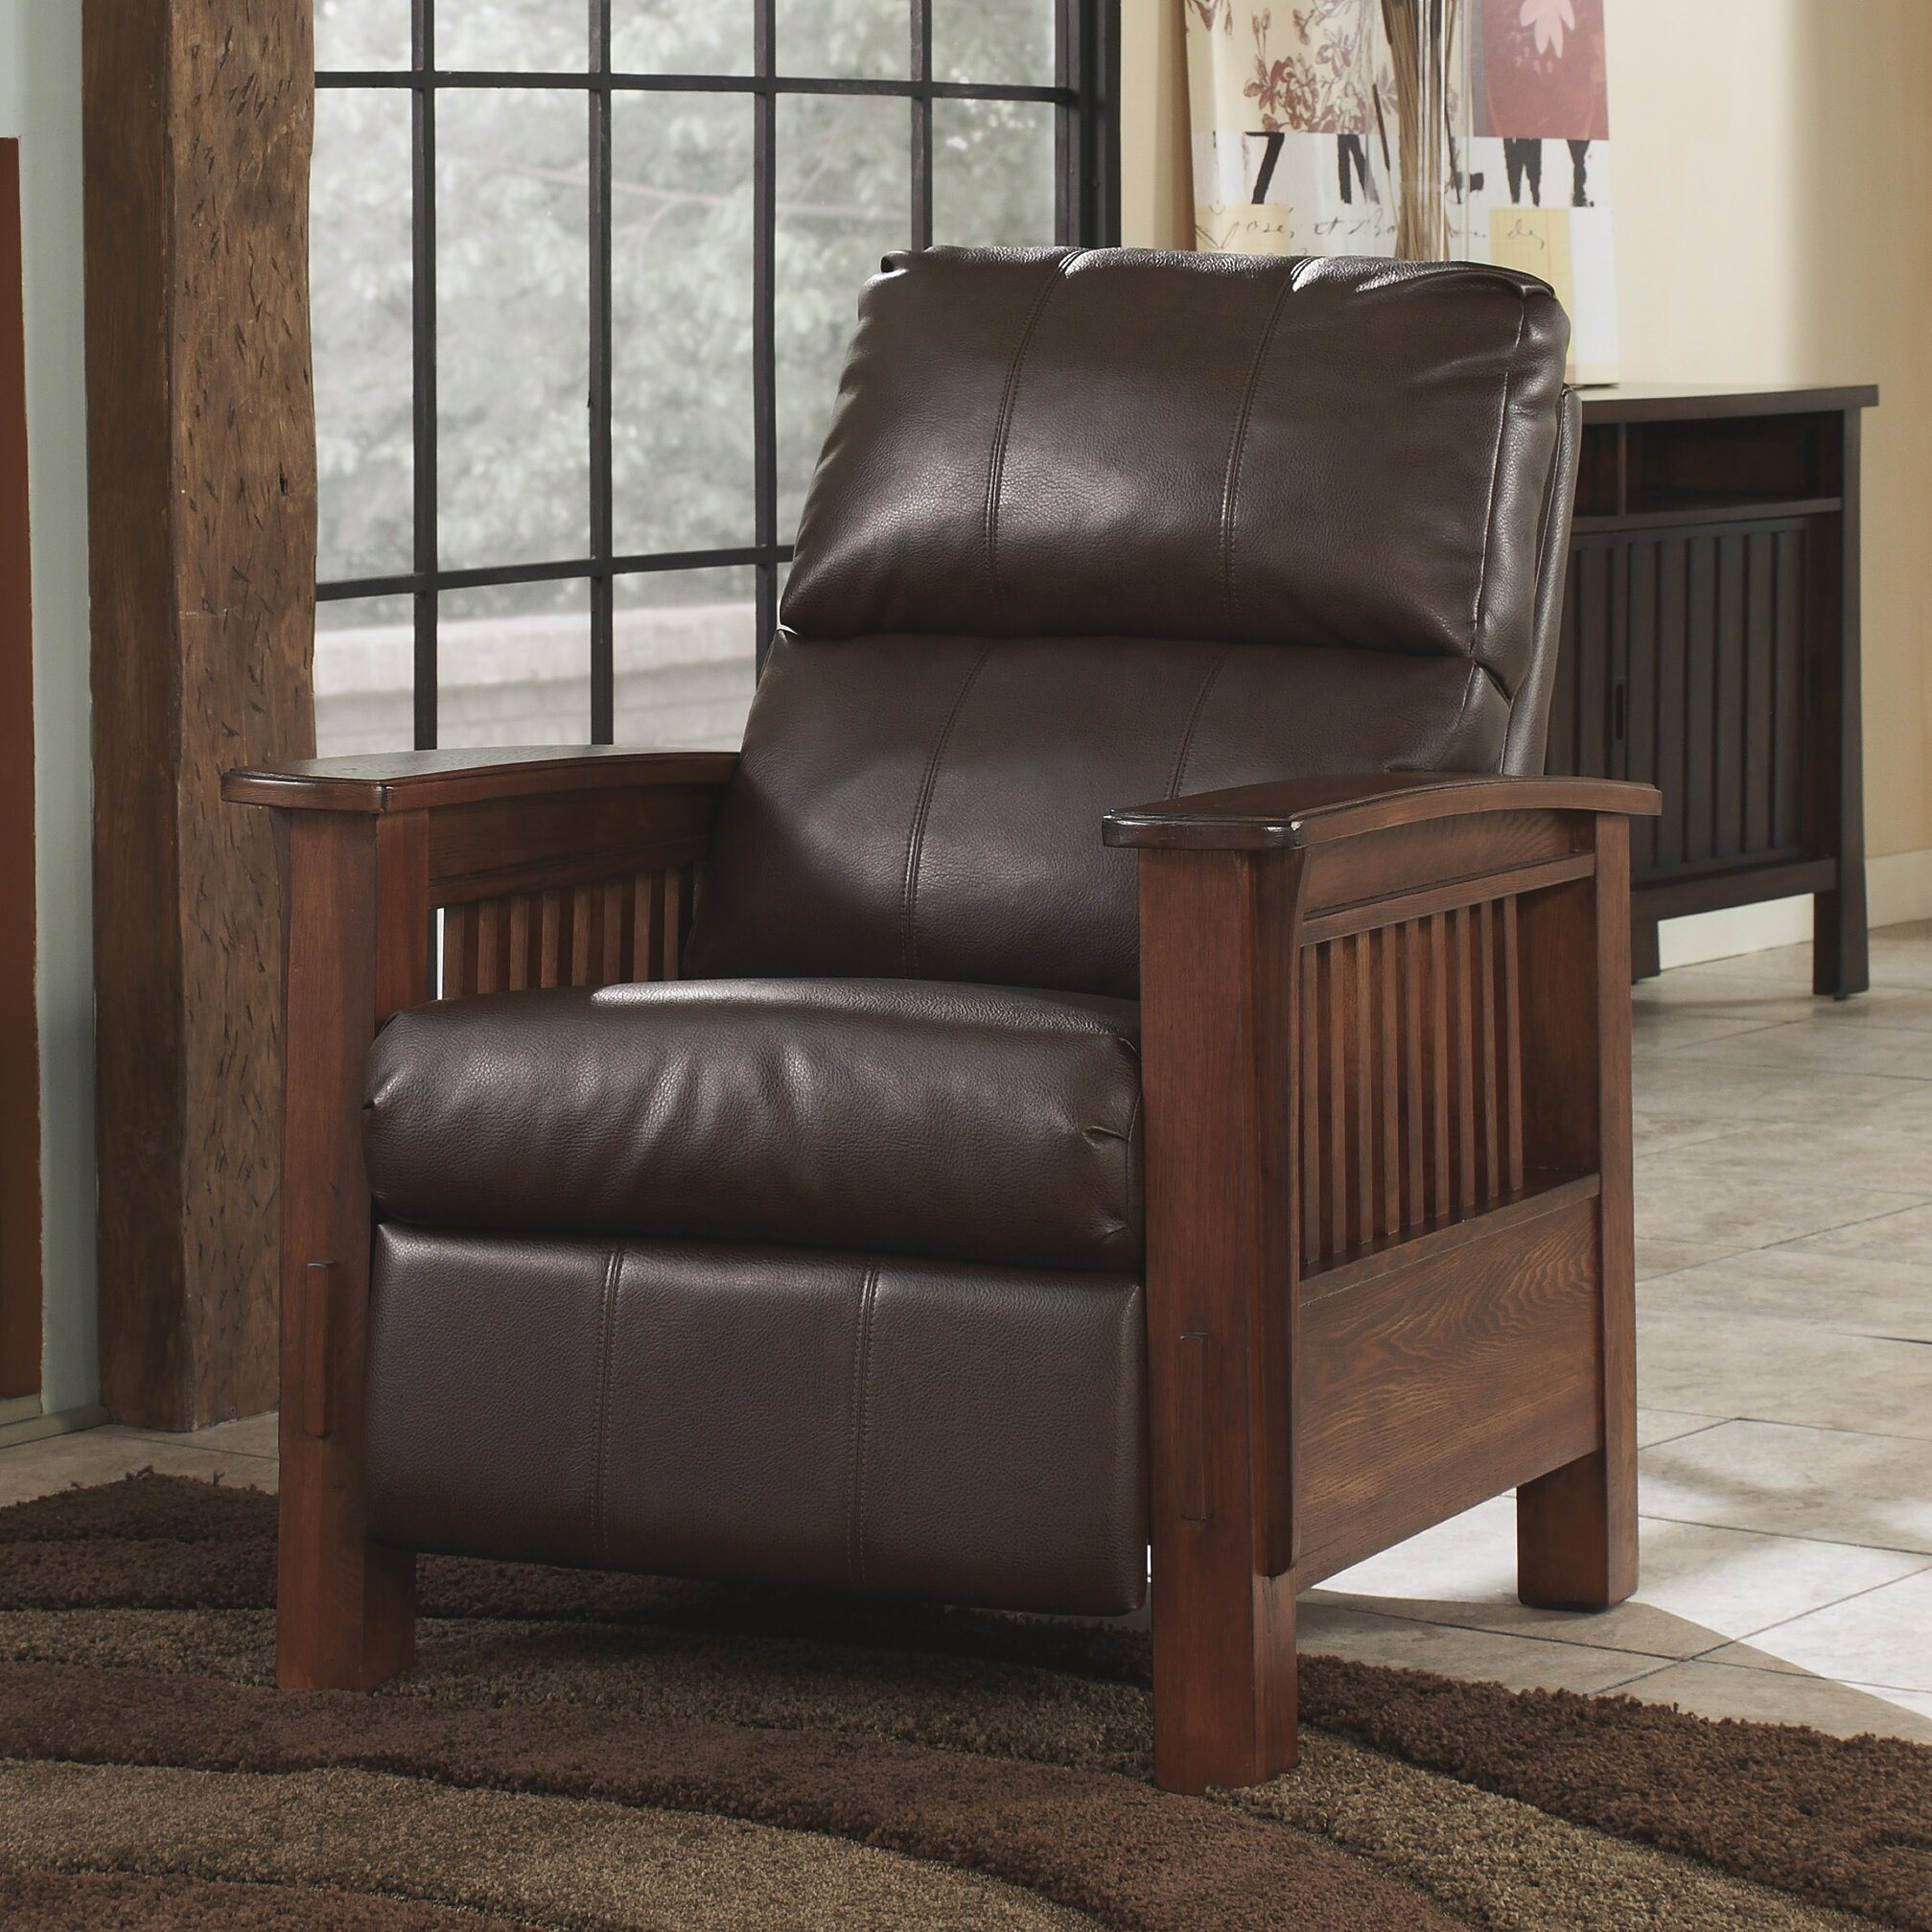 Ashley Furniture Recliners: Signature Design By Ashley Caro Recliner & Reviews